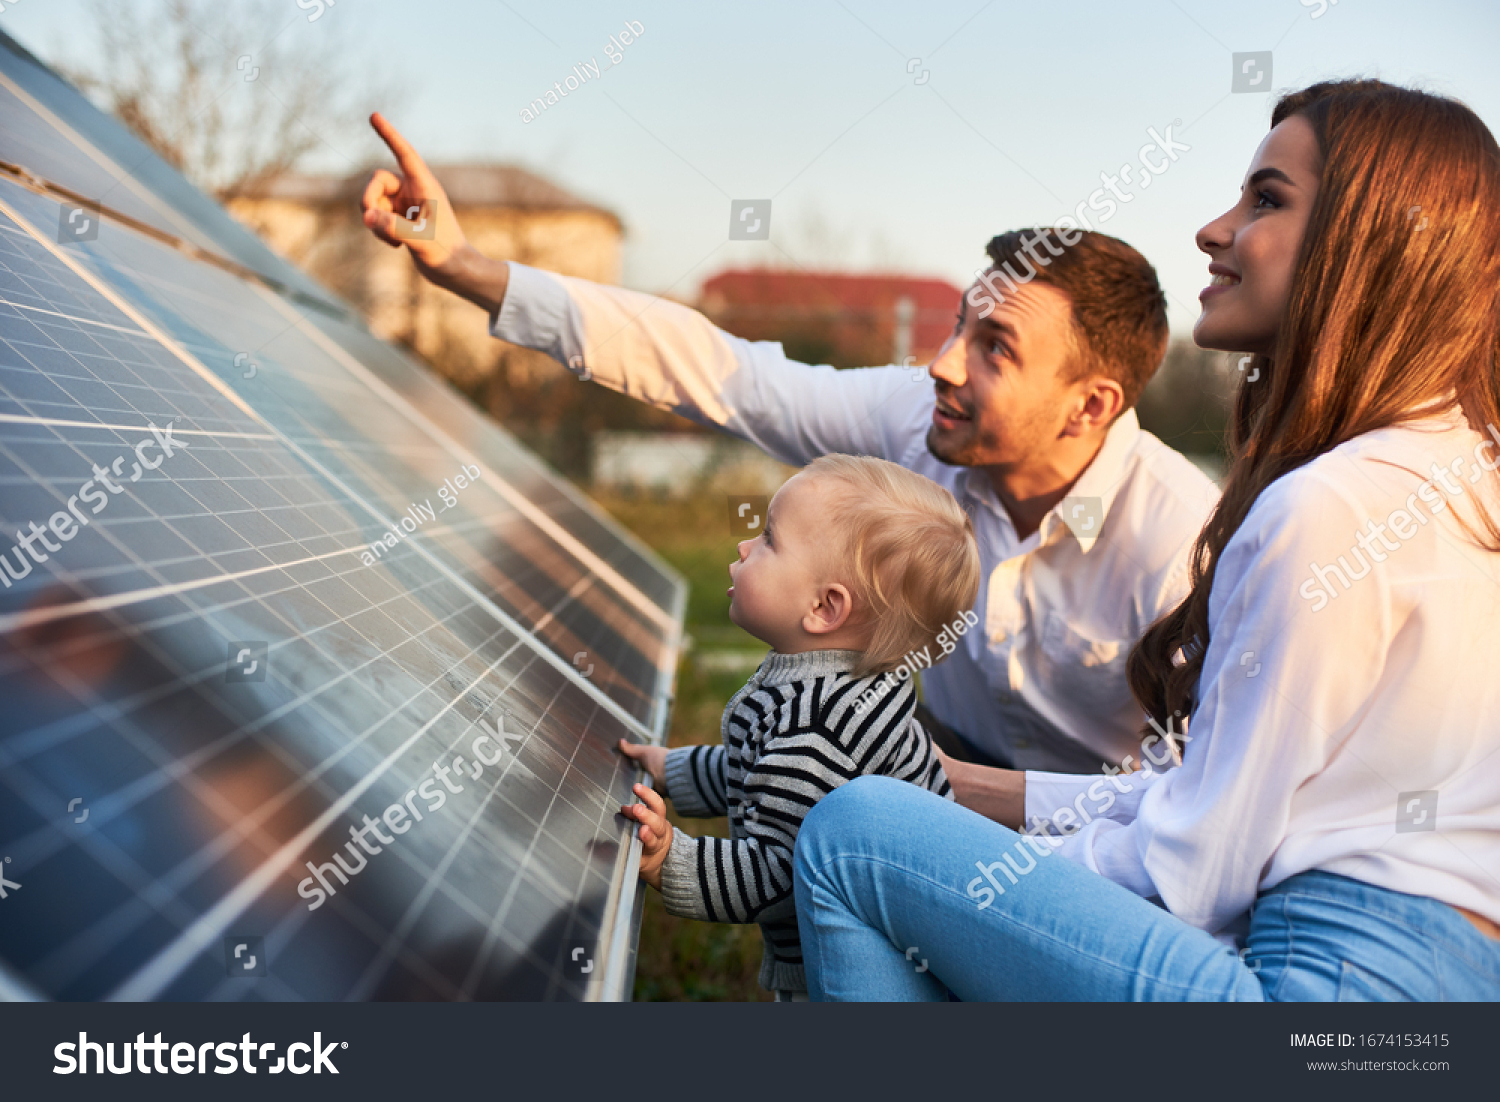 Man shows his family the solar panels on the plot near the house during a warm day. Young woman with a kid and a man in the sun rays look at the solar panels. #1674153415